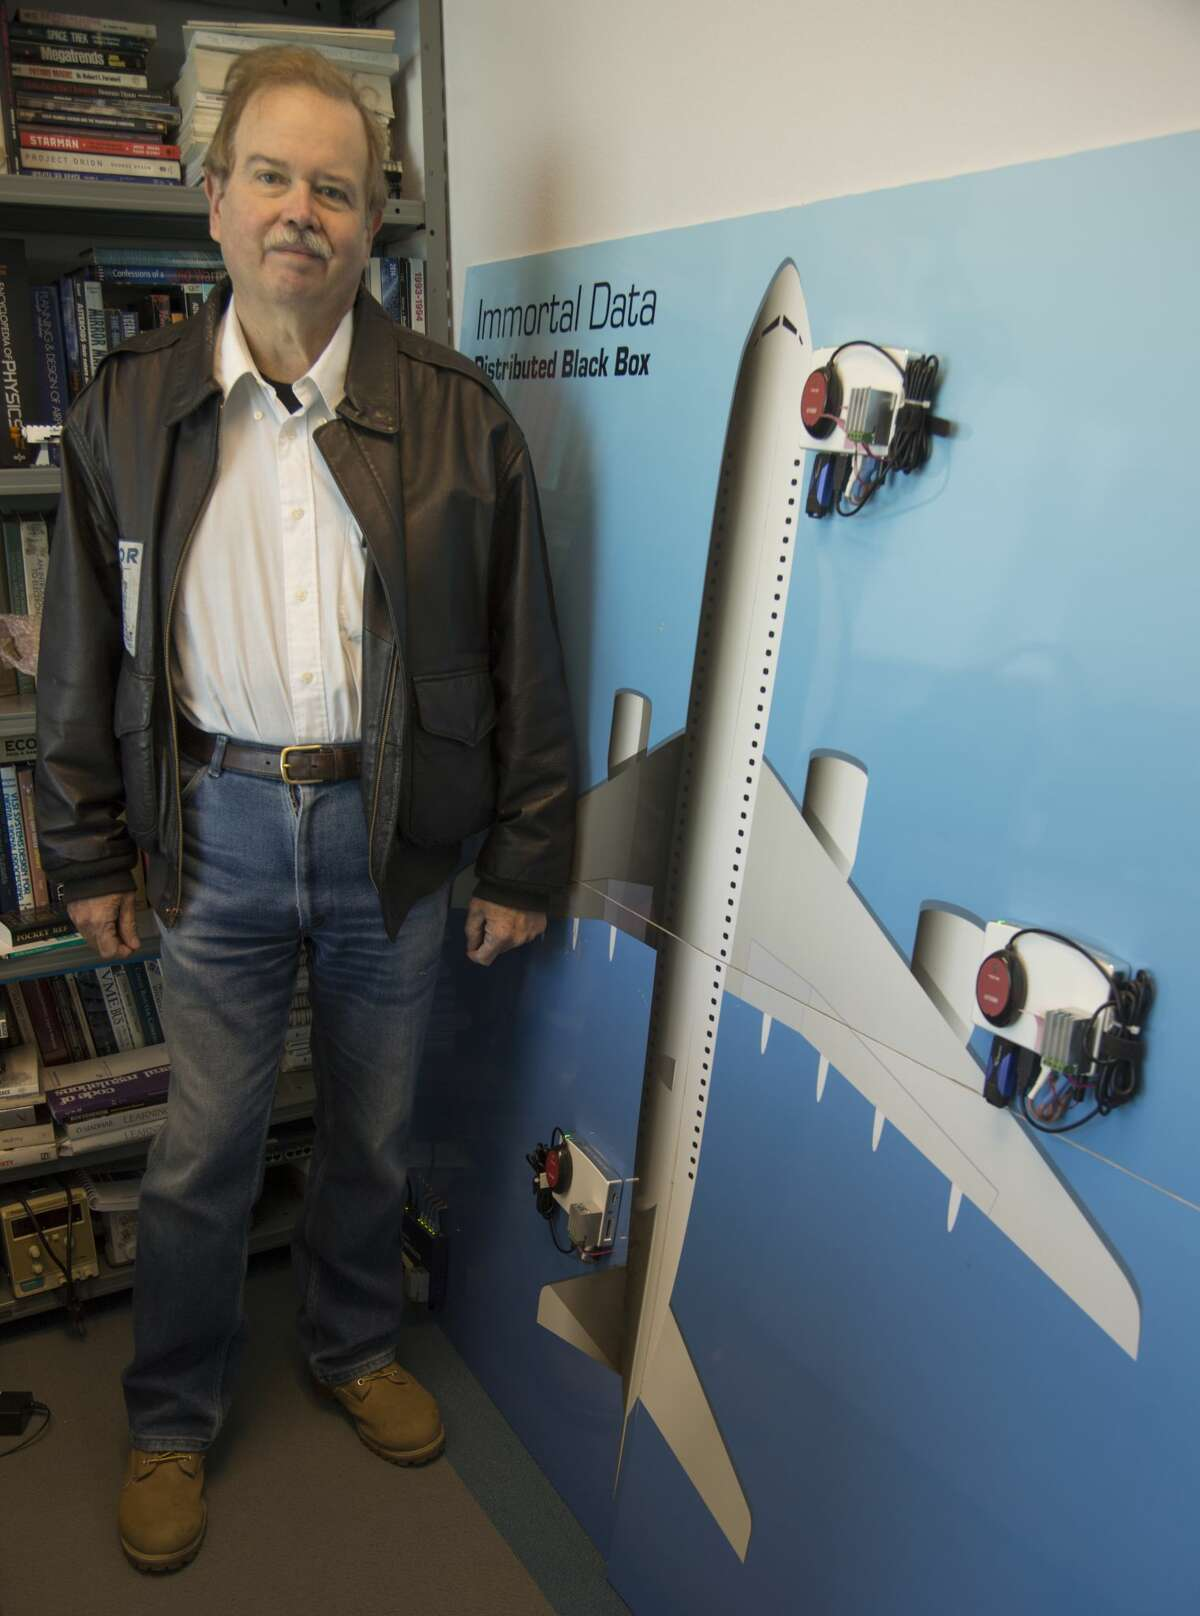 Dale Amon, president of Immortal Data, shows his patented multiple aircraft black box design in his office on Feb. 10.